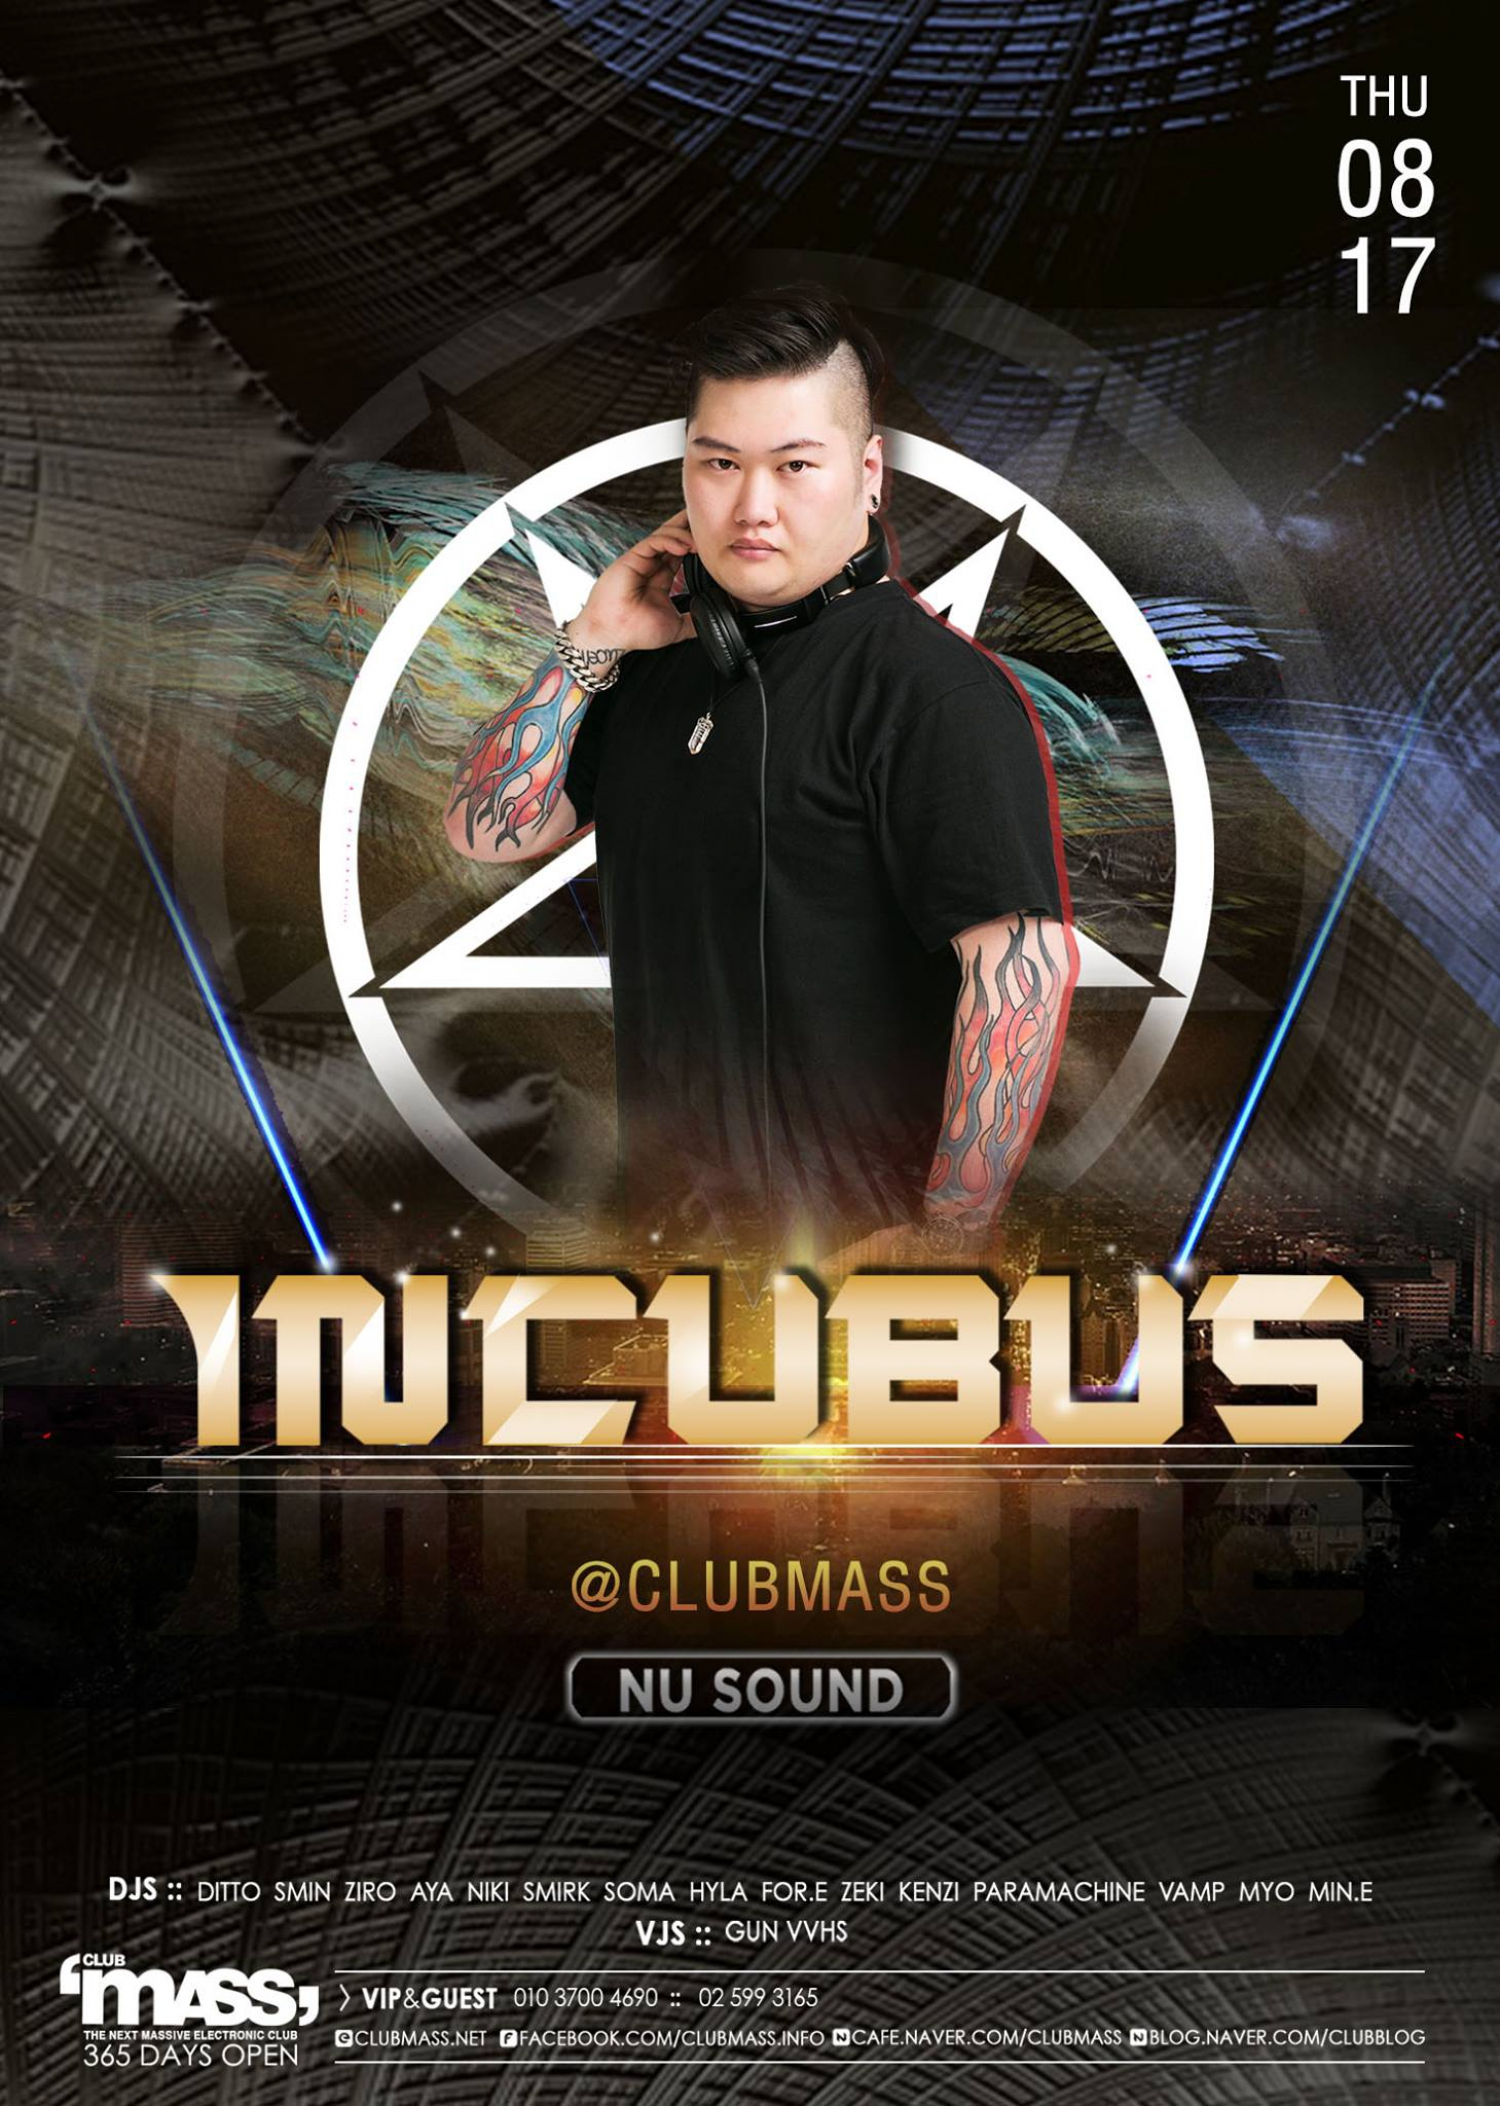 NU SOUND PARTY GUEST DJ INCUBUS